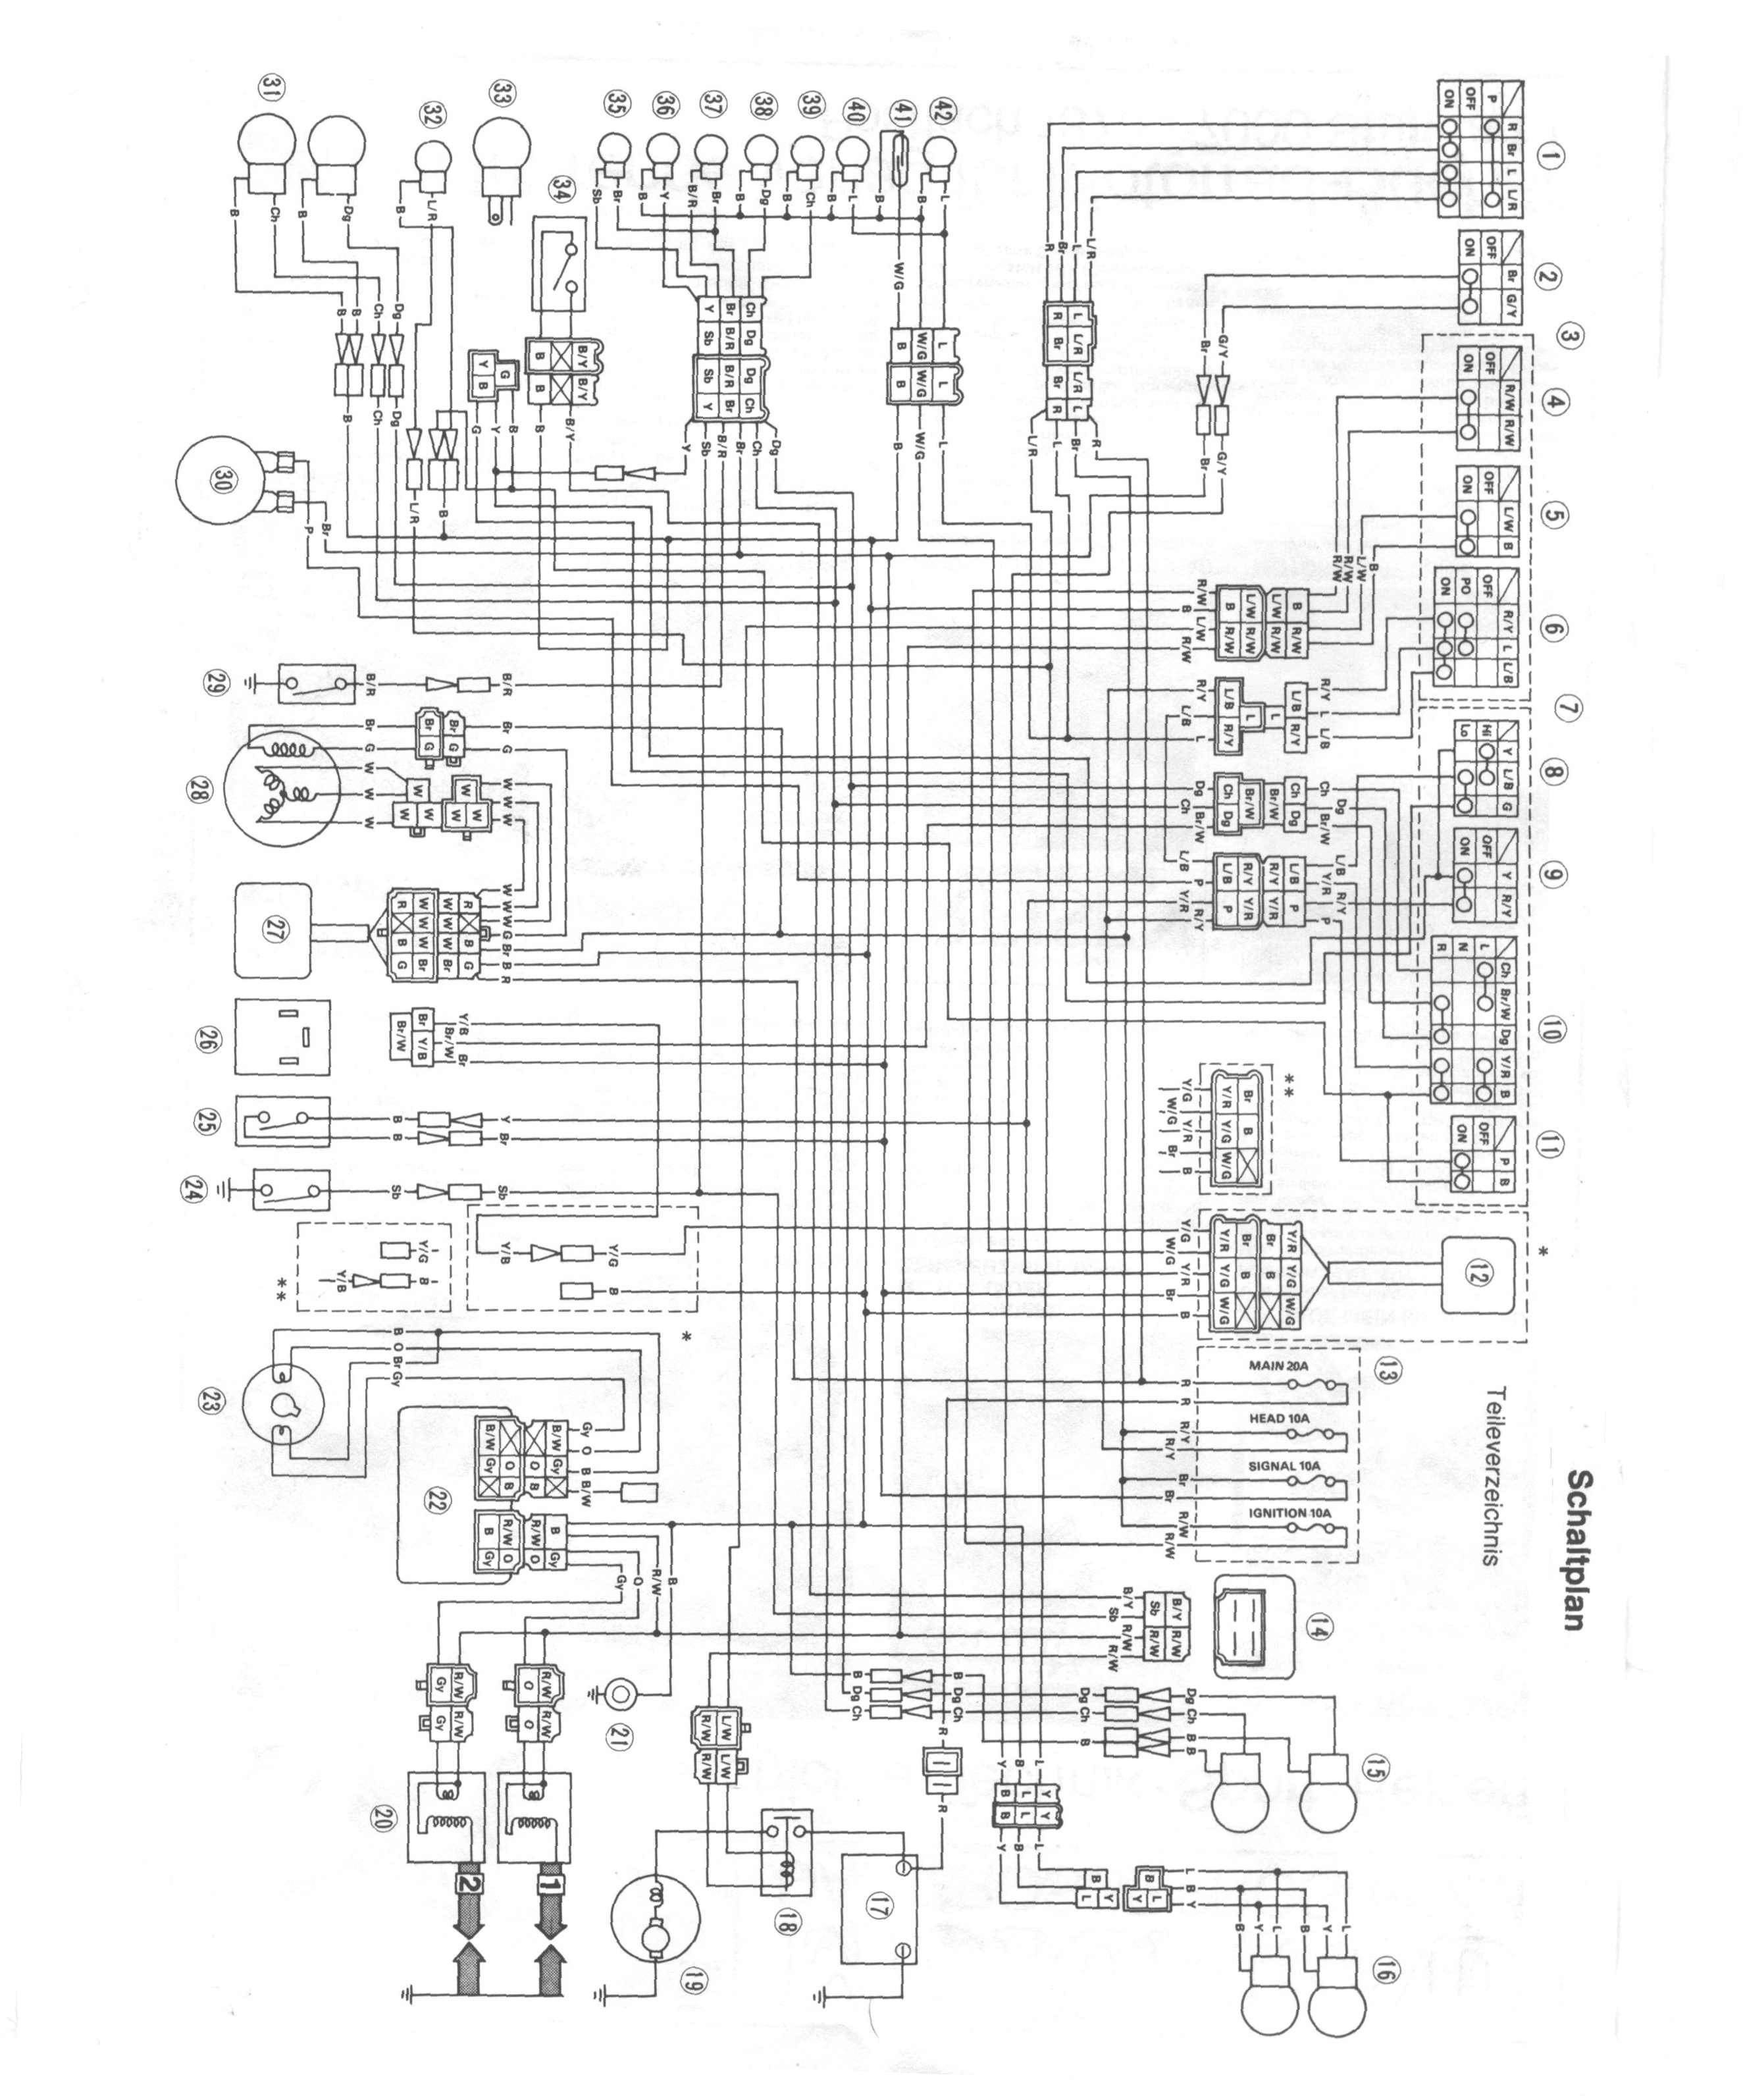 Wiring Diagrams For Honda Spree furthermore Cb750 Simplified Wiring Diagram further 2009 Klr 650 Wiring Diagram also Diagram Of 1980 Cb750 Carbs in addition Yamaha Virago 500 Wiring Diagram. on honda cb650 e wiring diagram